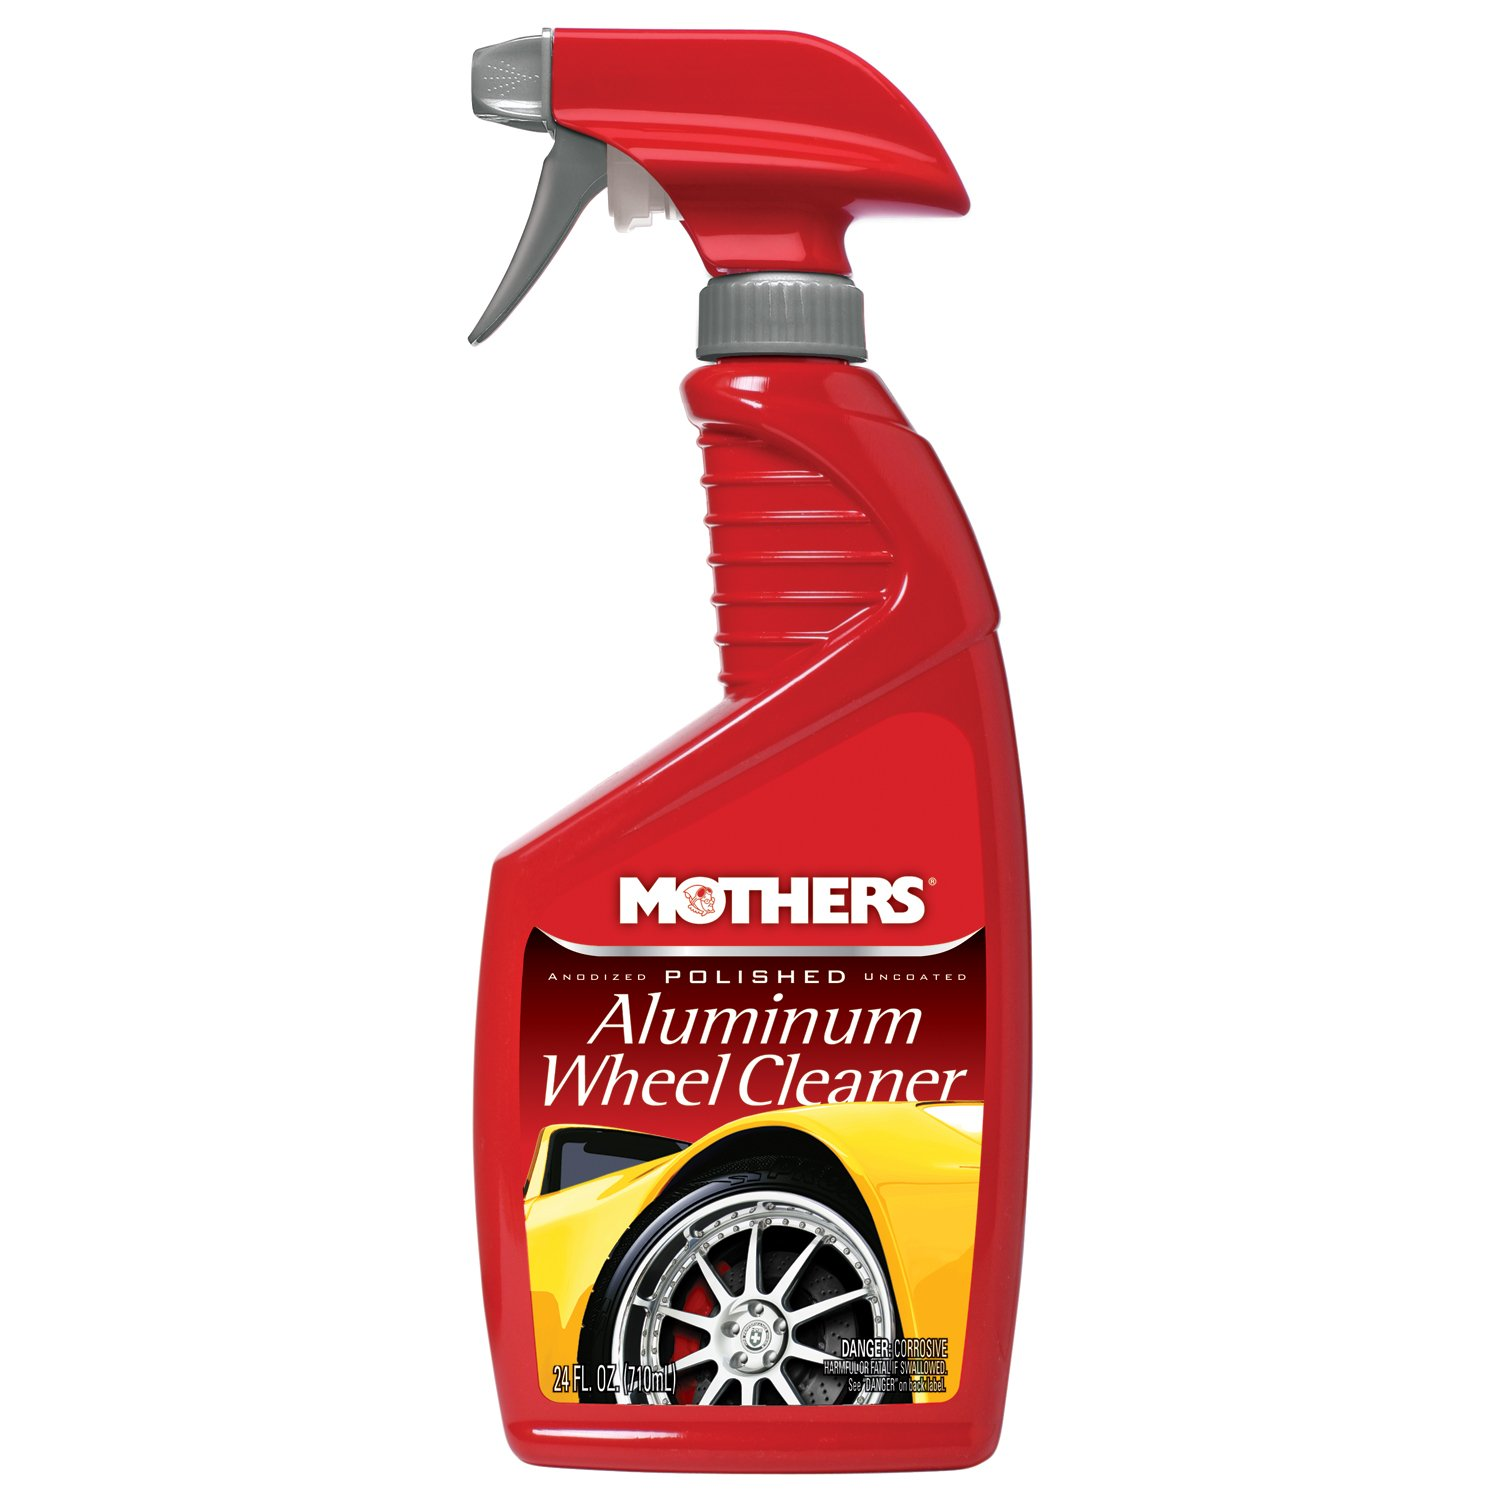 The Best Wheel Cleaner Reviews - A Detailed Buying Guide 3